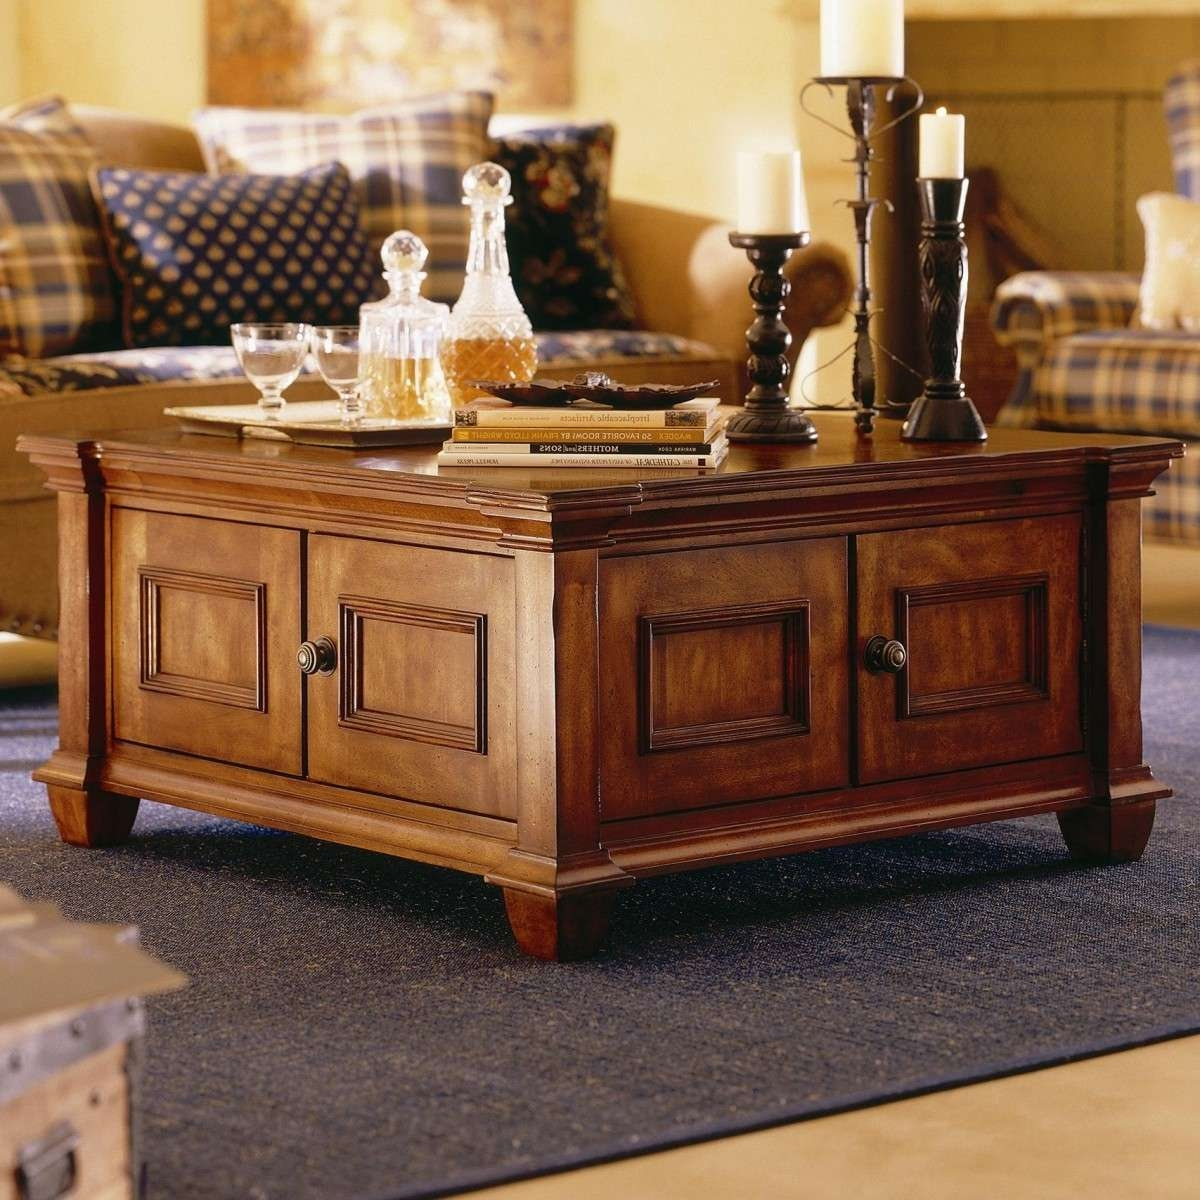 Popular Square Coffee Tables With Drawers Inside Coffee Tables : Square Coffee Table With Storage Cubes Drawers (View 6 of 20)